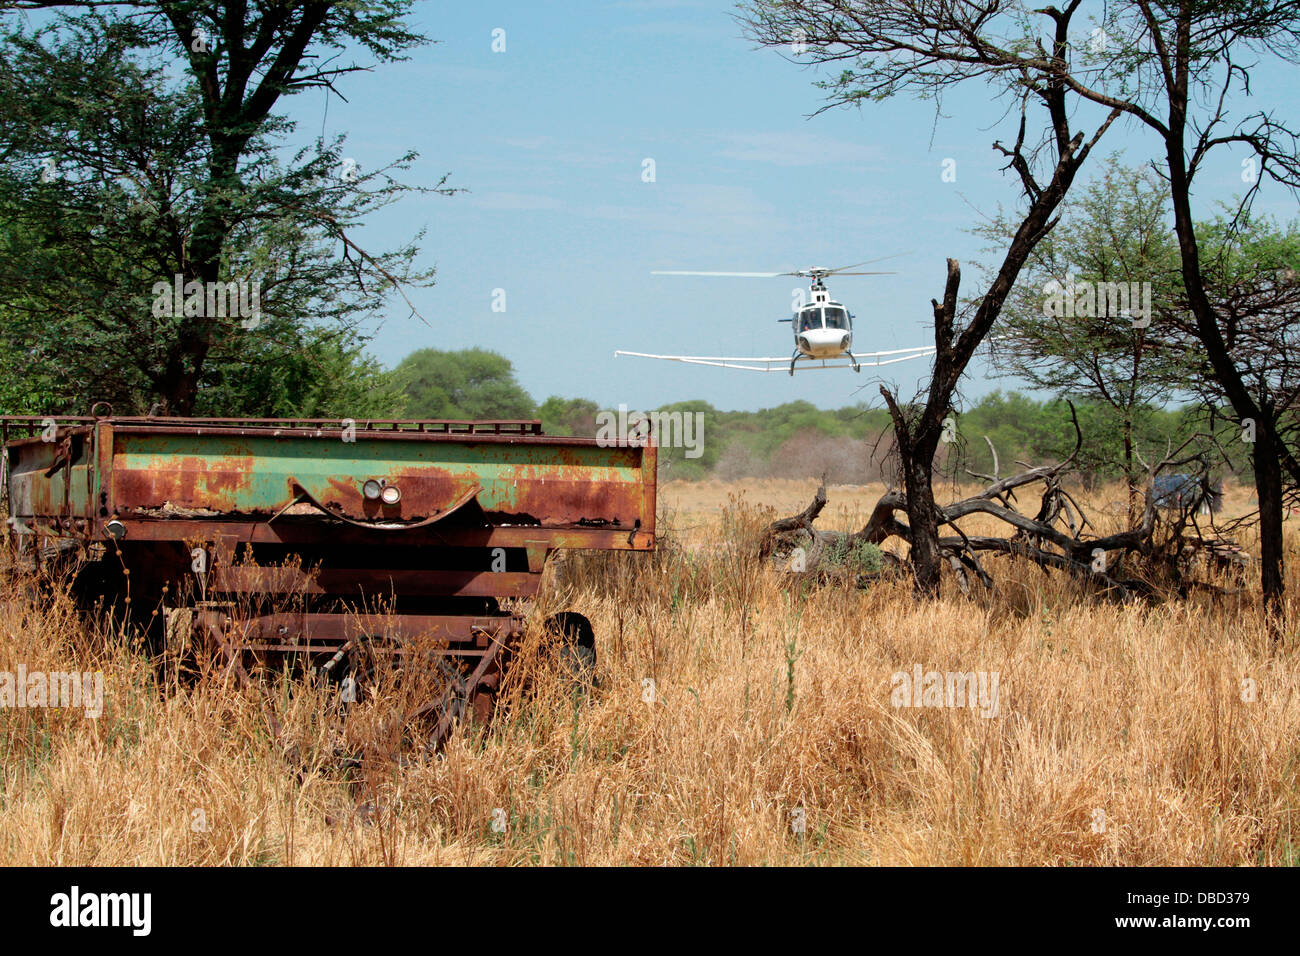 The Eurocopter AS350 Ecureuil; squirrel flies a line for a geophys mineral survey near Otjiwarongo in Namibia - Stock Image